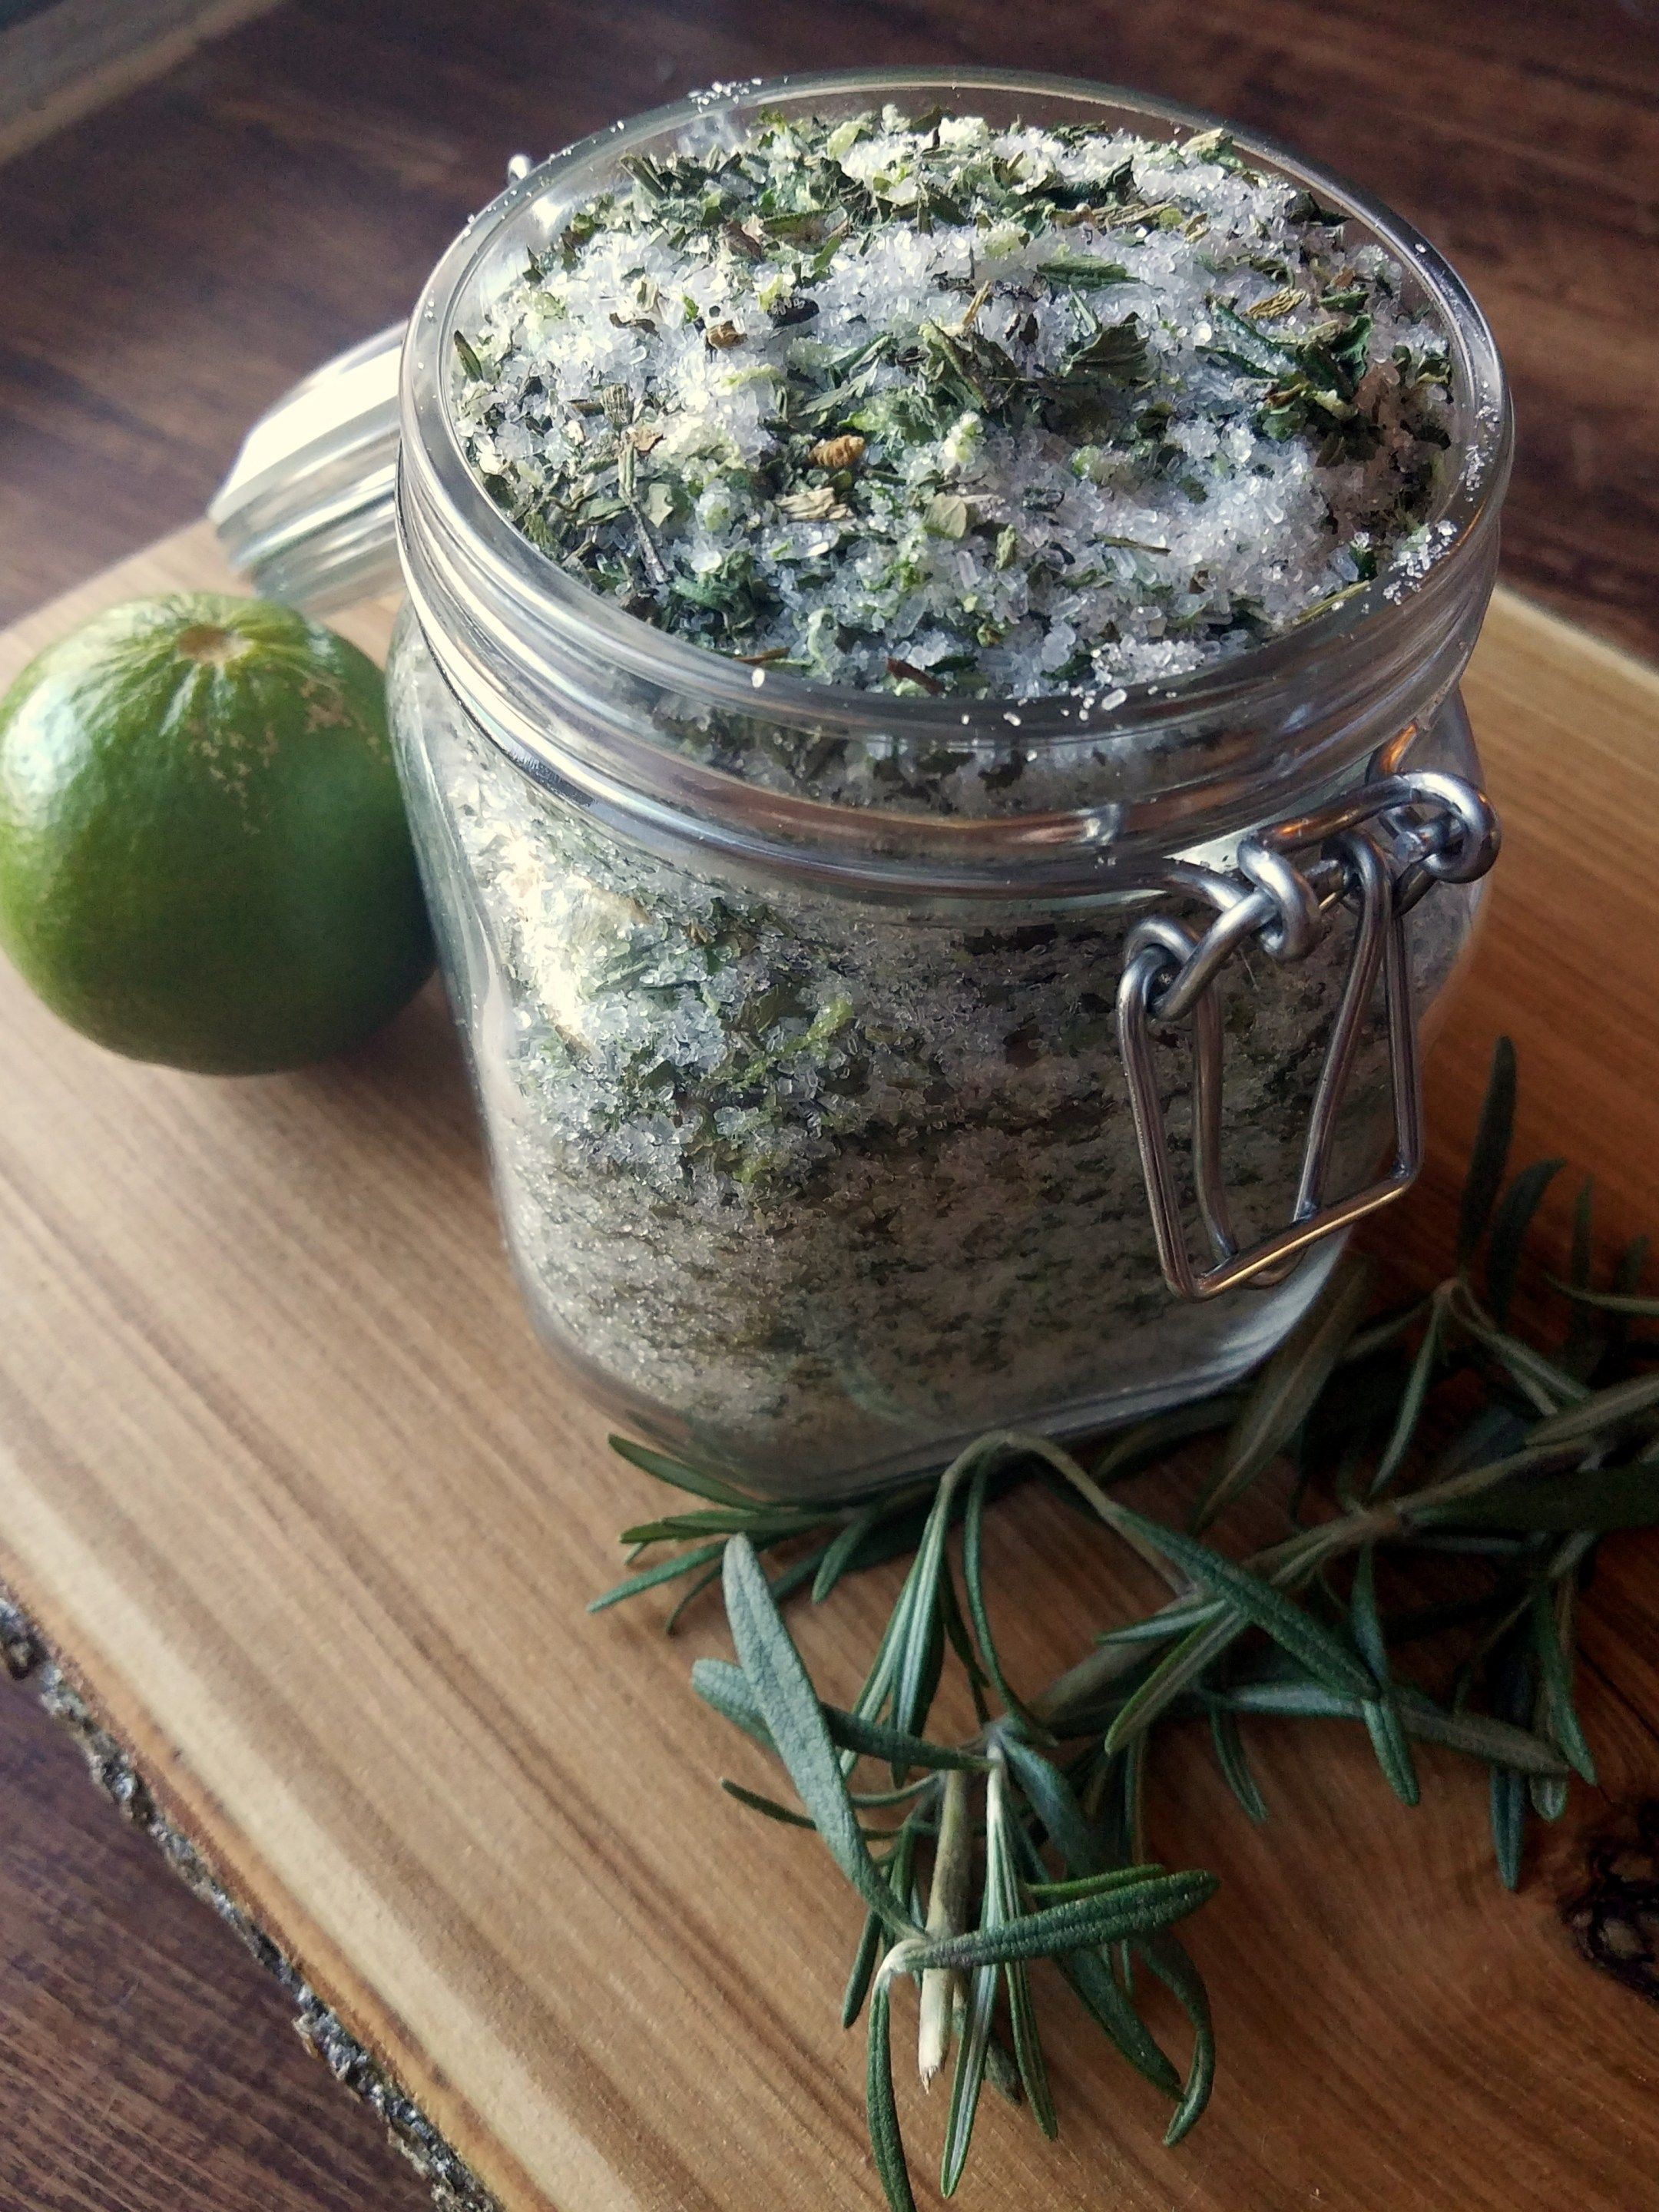 I LOVE a good soak in the tub with herbs and salts! This rosemary ...